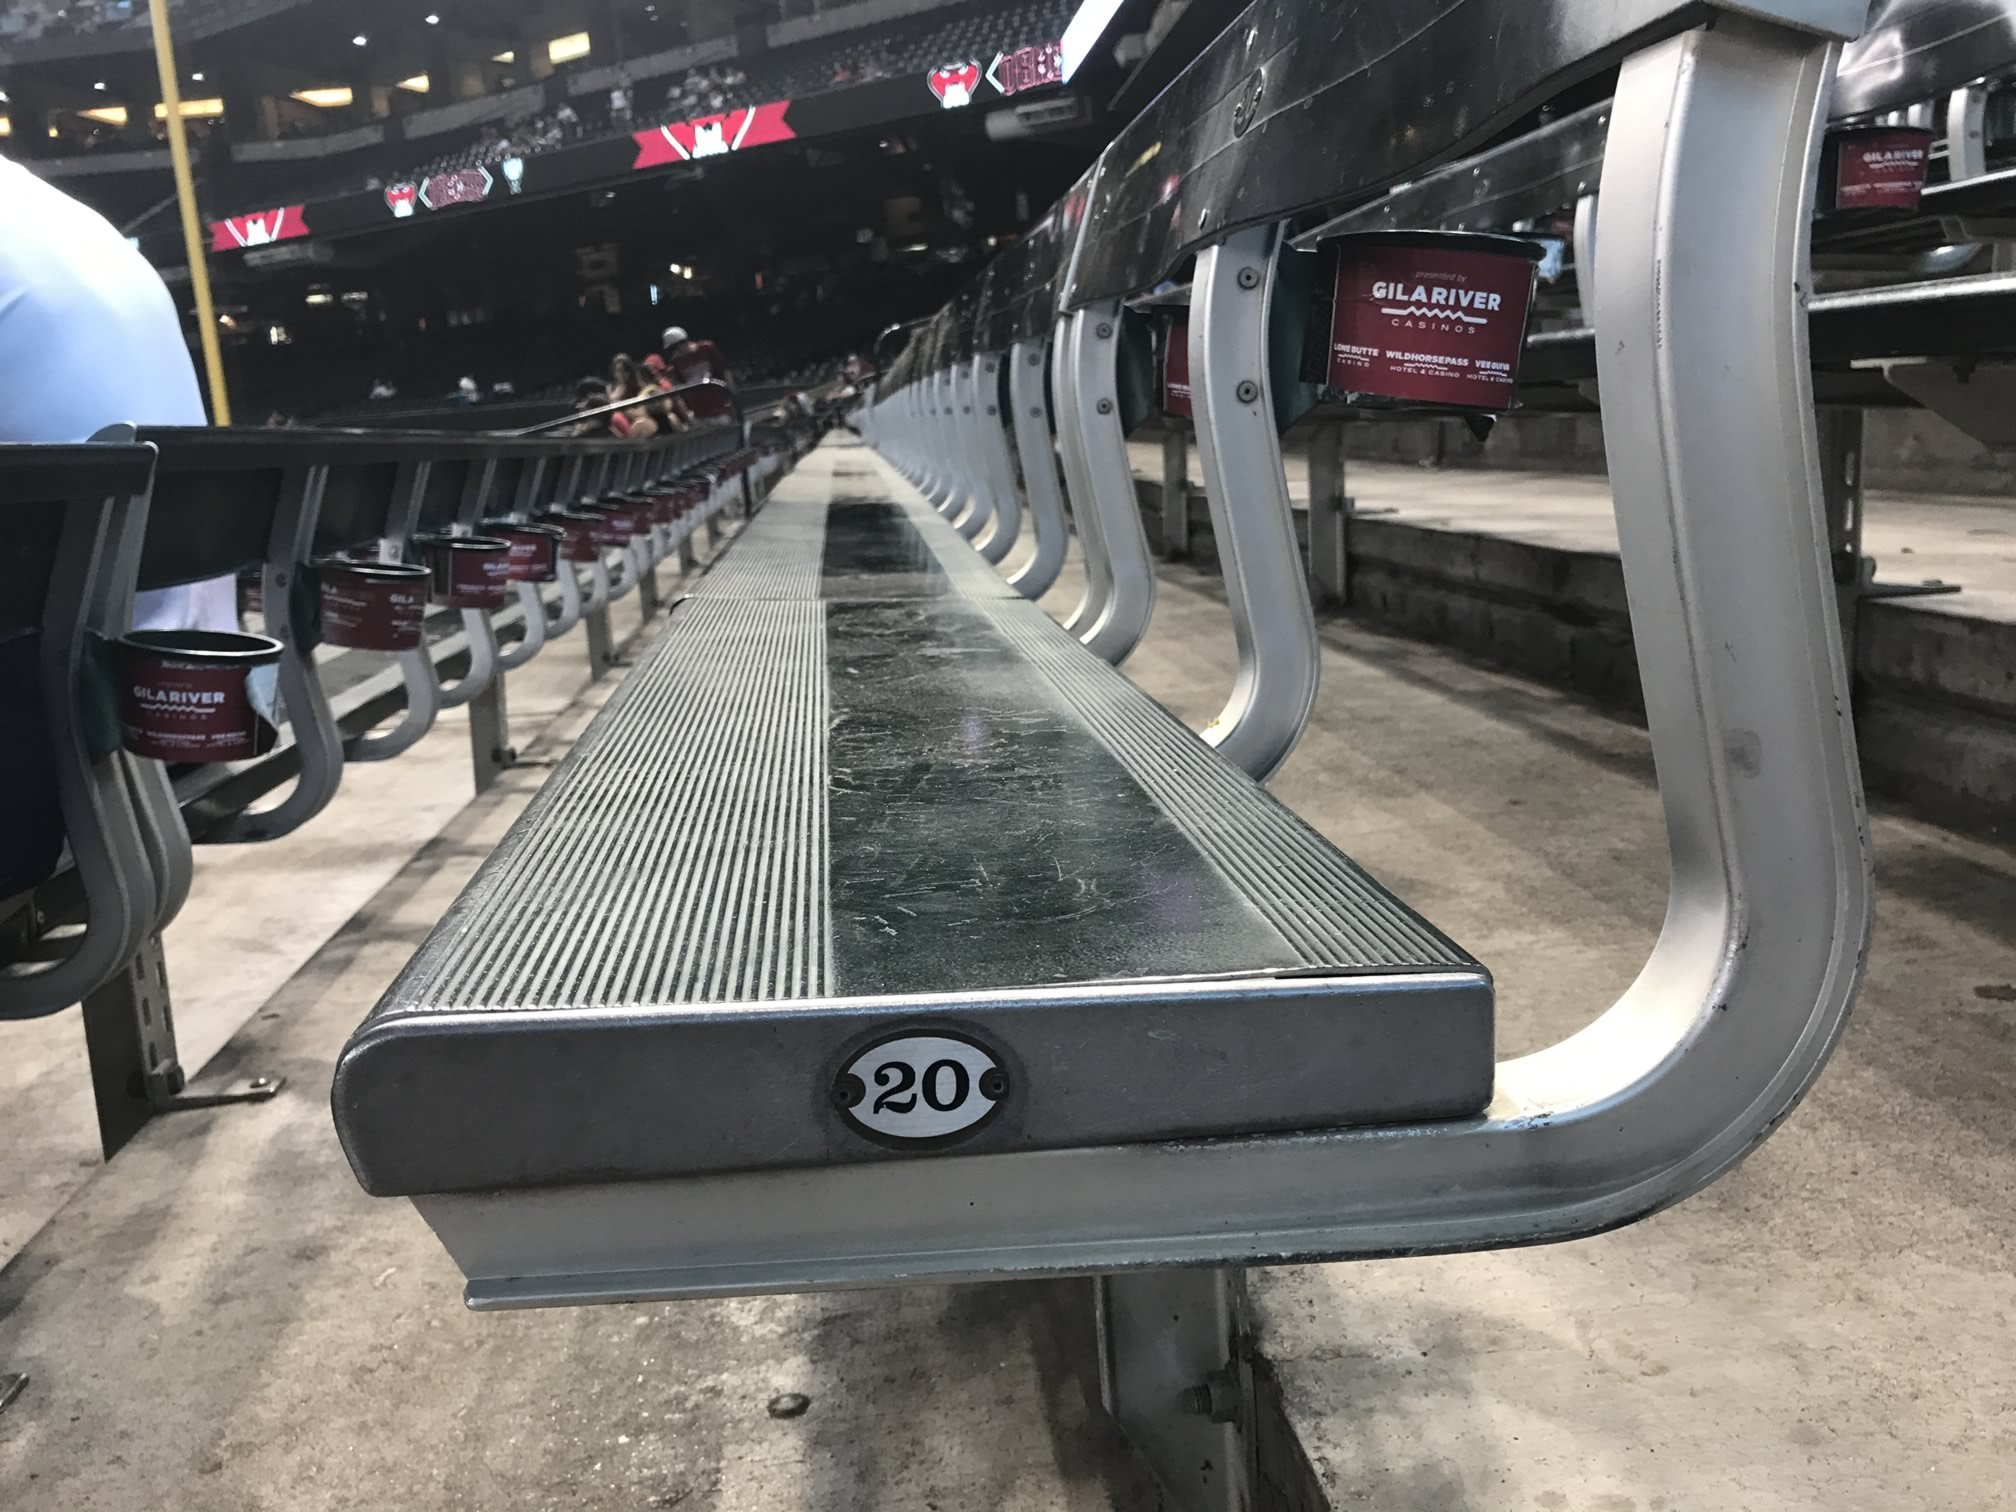 chase field bleachers